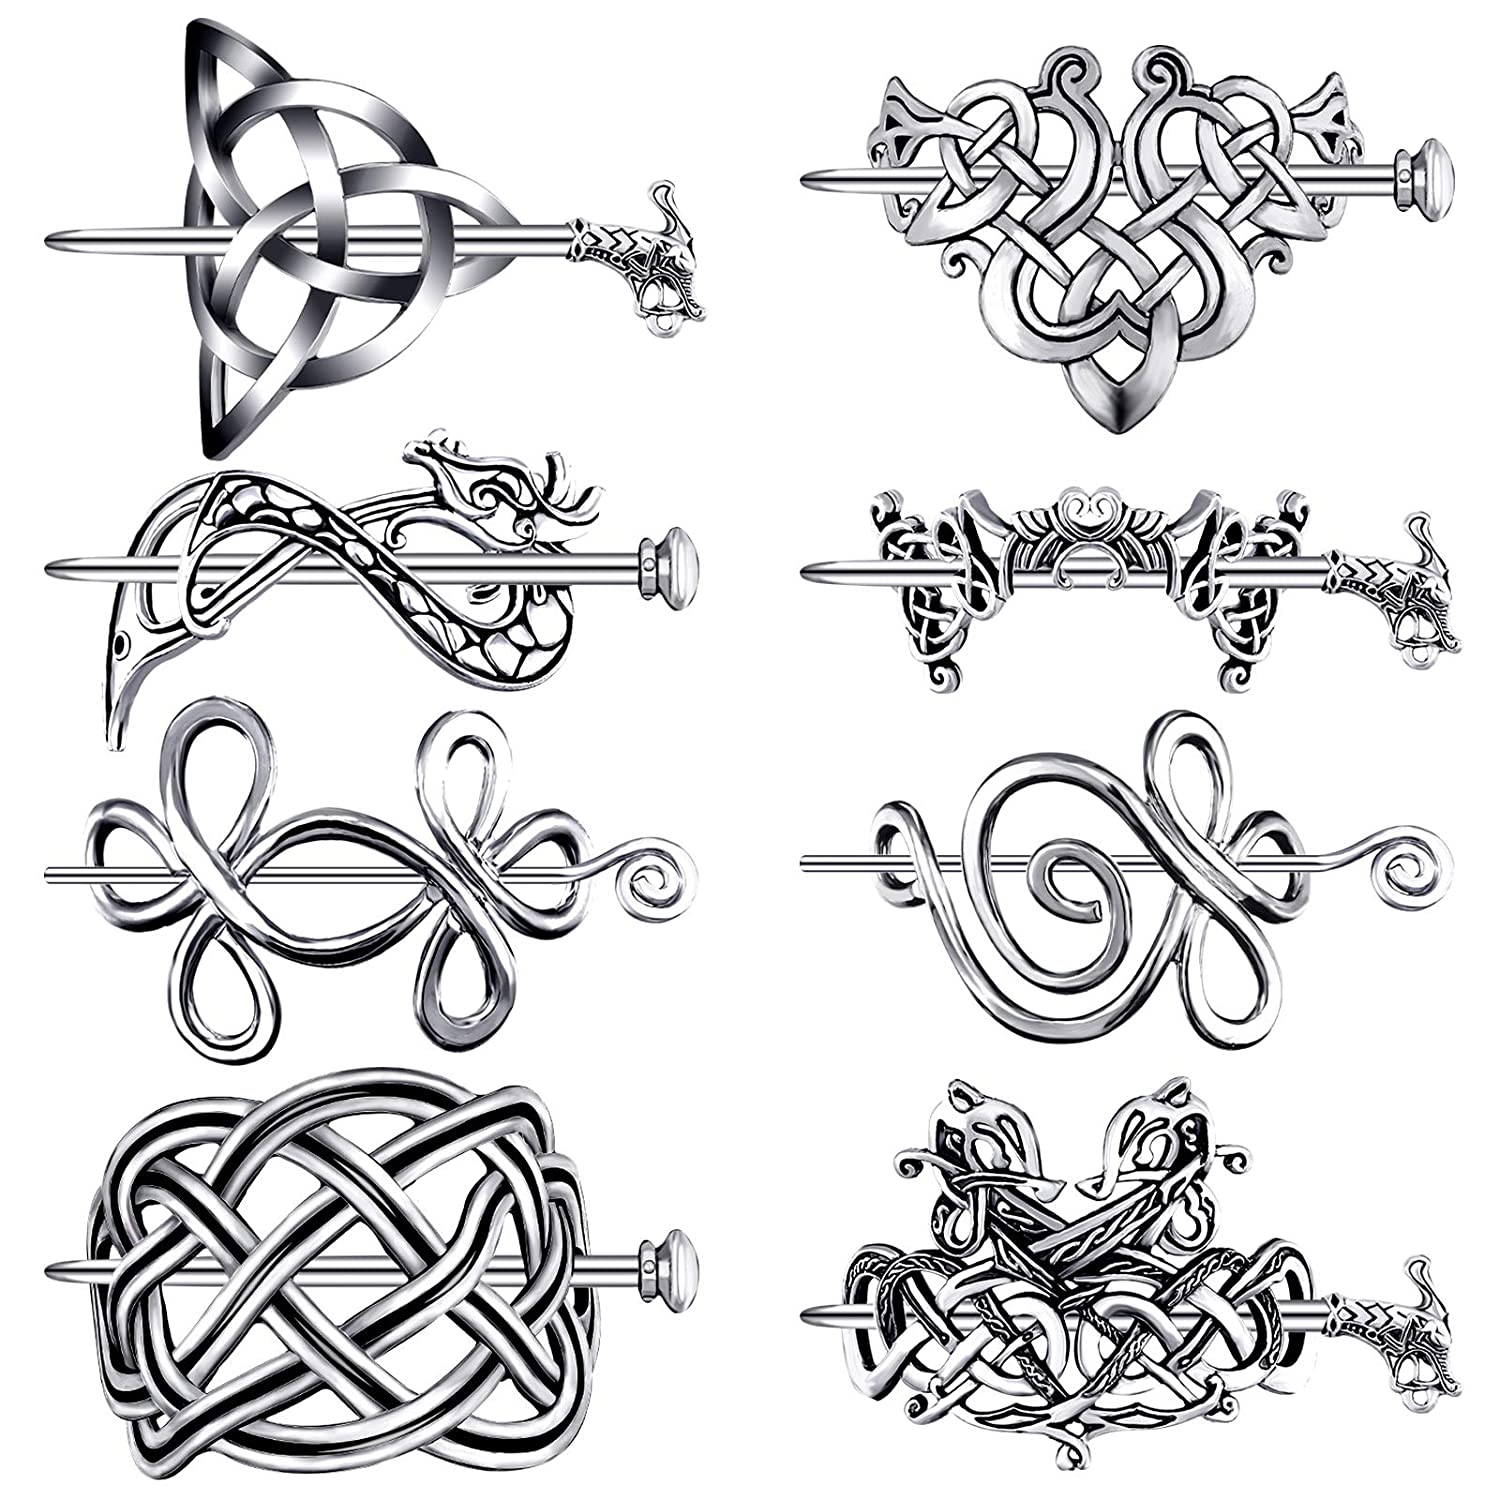 8 Pieces Celtic Hair Slide Hairpins Hair Accessories Celtic Knot 8 Styles Hair Clips Vintage Metal Hair Accessories Creative Minimalist Metal Hair Pin for Women